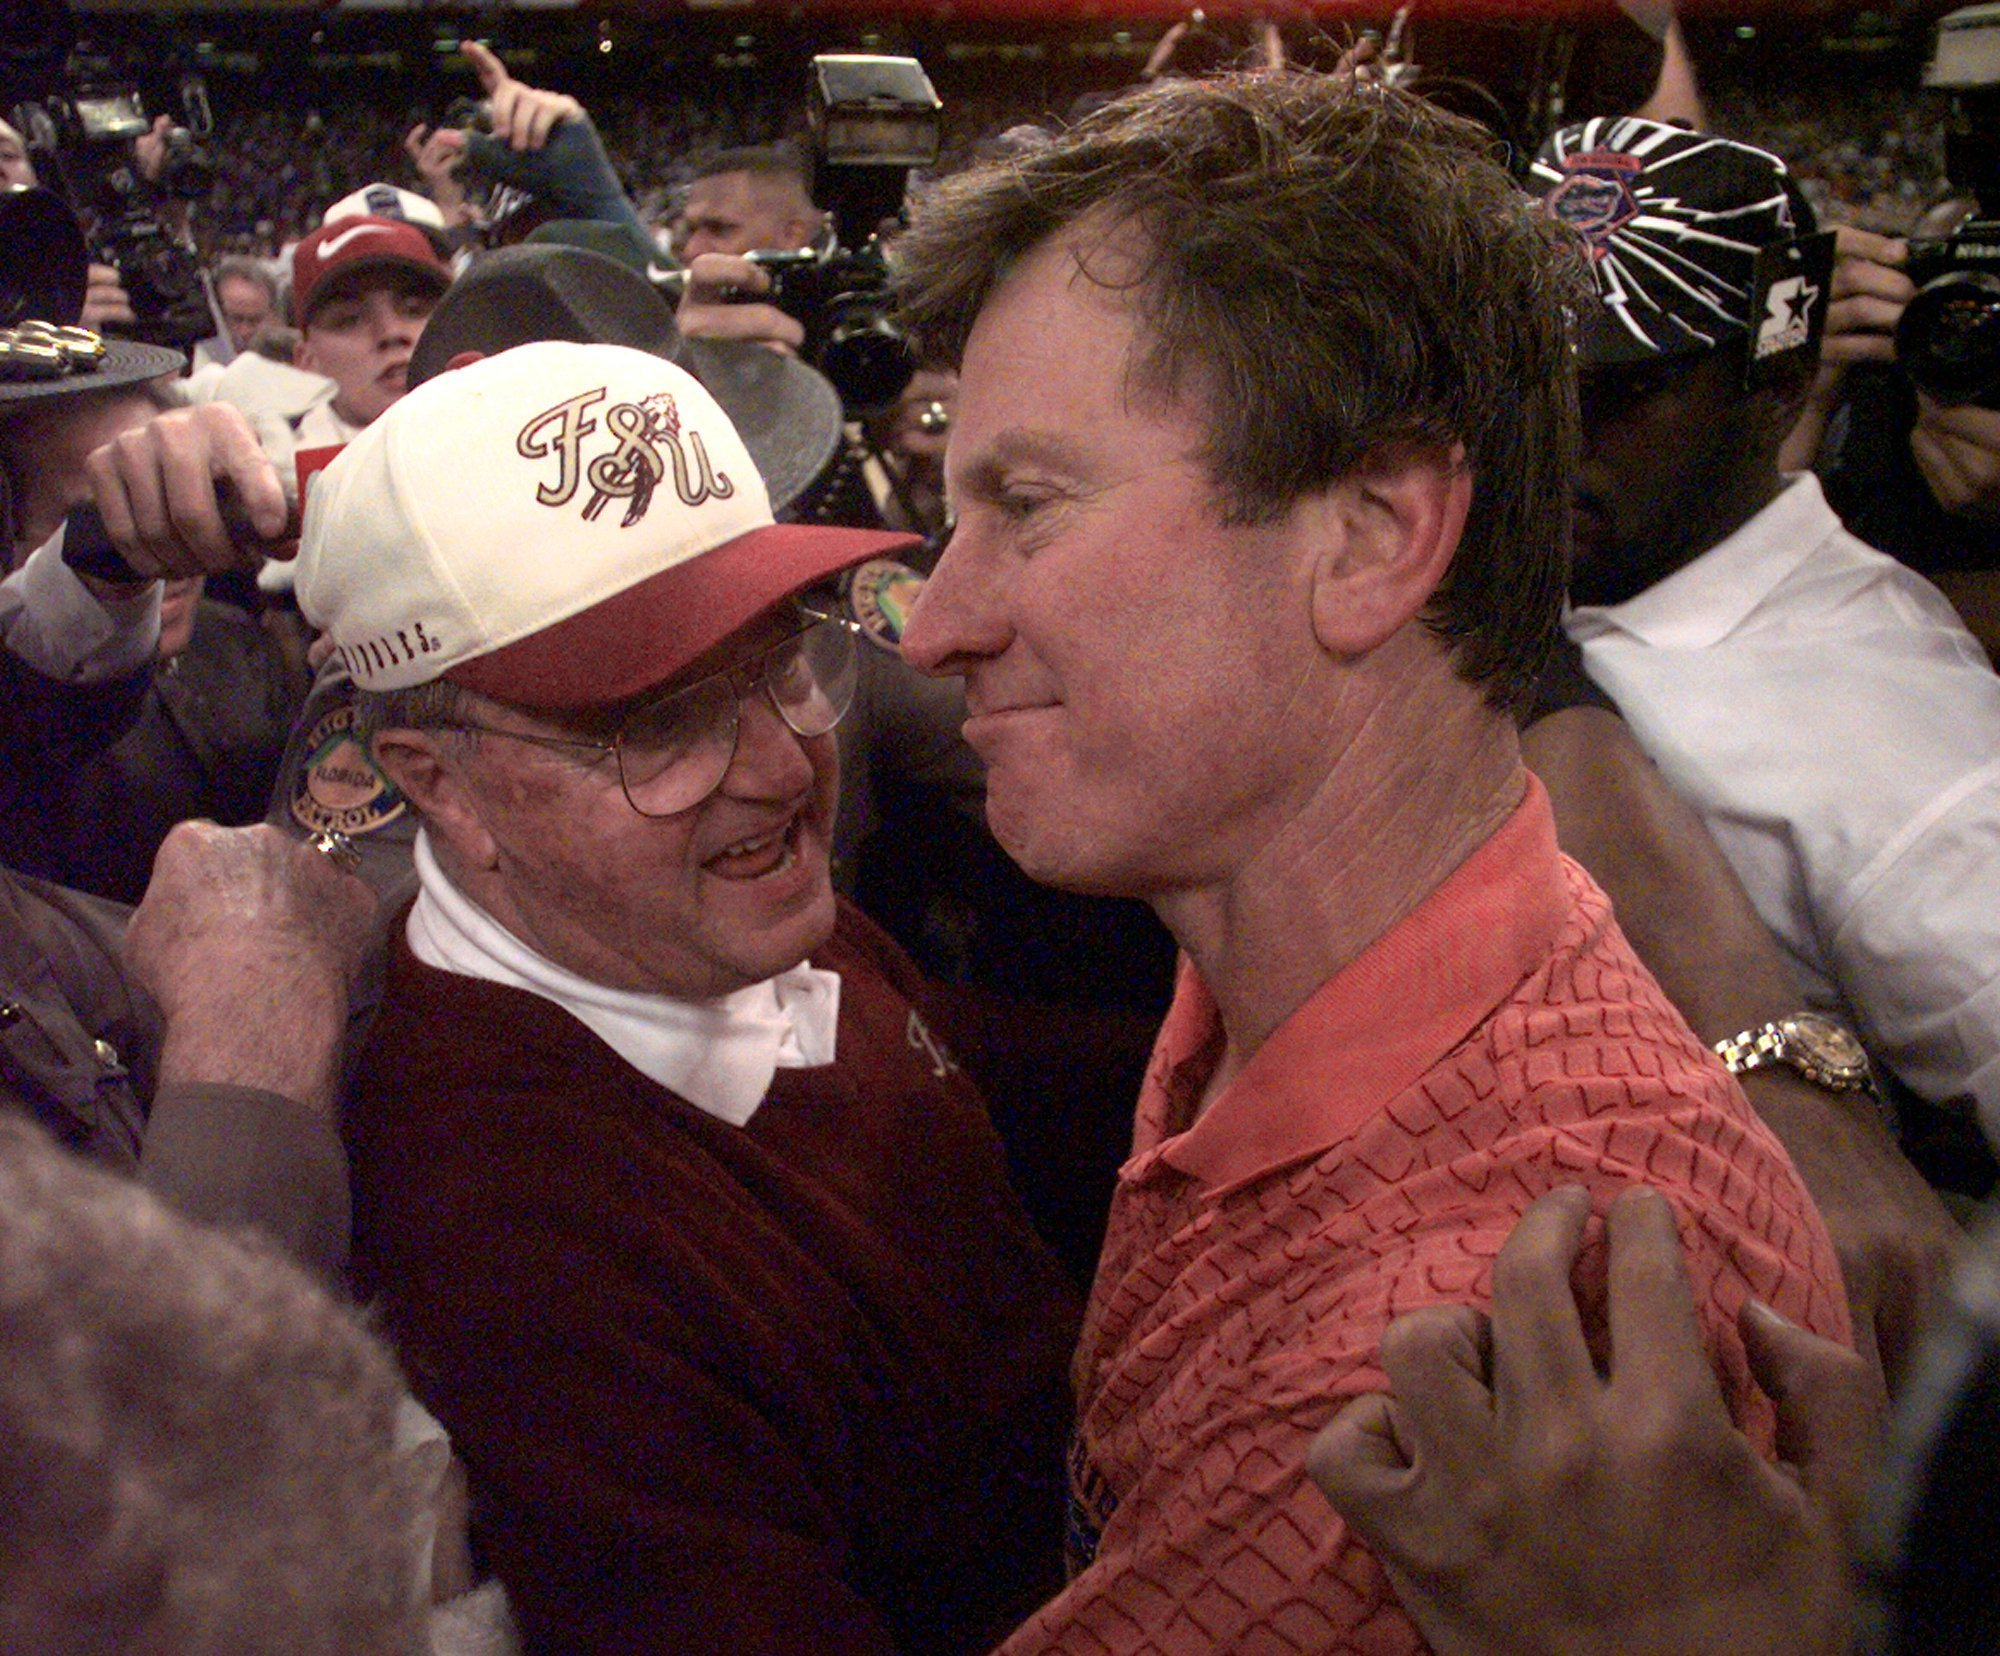 FILE - In this Jan. 2, 1997, file photo, Florida State Seminoles coach Bobby Bowden, left, congratulates Florida Gators coach Steve Spurrier after the Gators won 52-20 in the Sugar Bowl at the Superdome in New Orleans. The Gators and Seminoles met 12 time